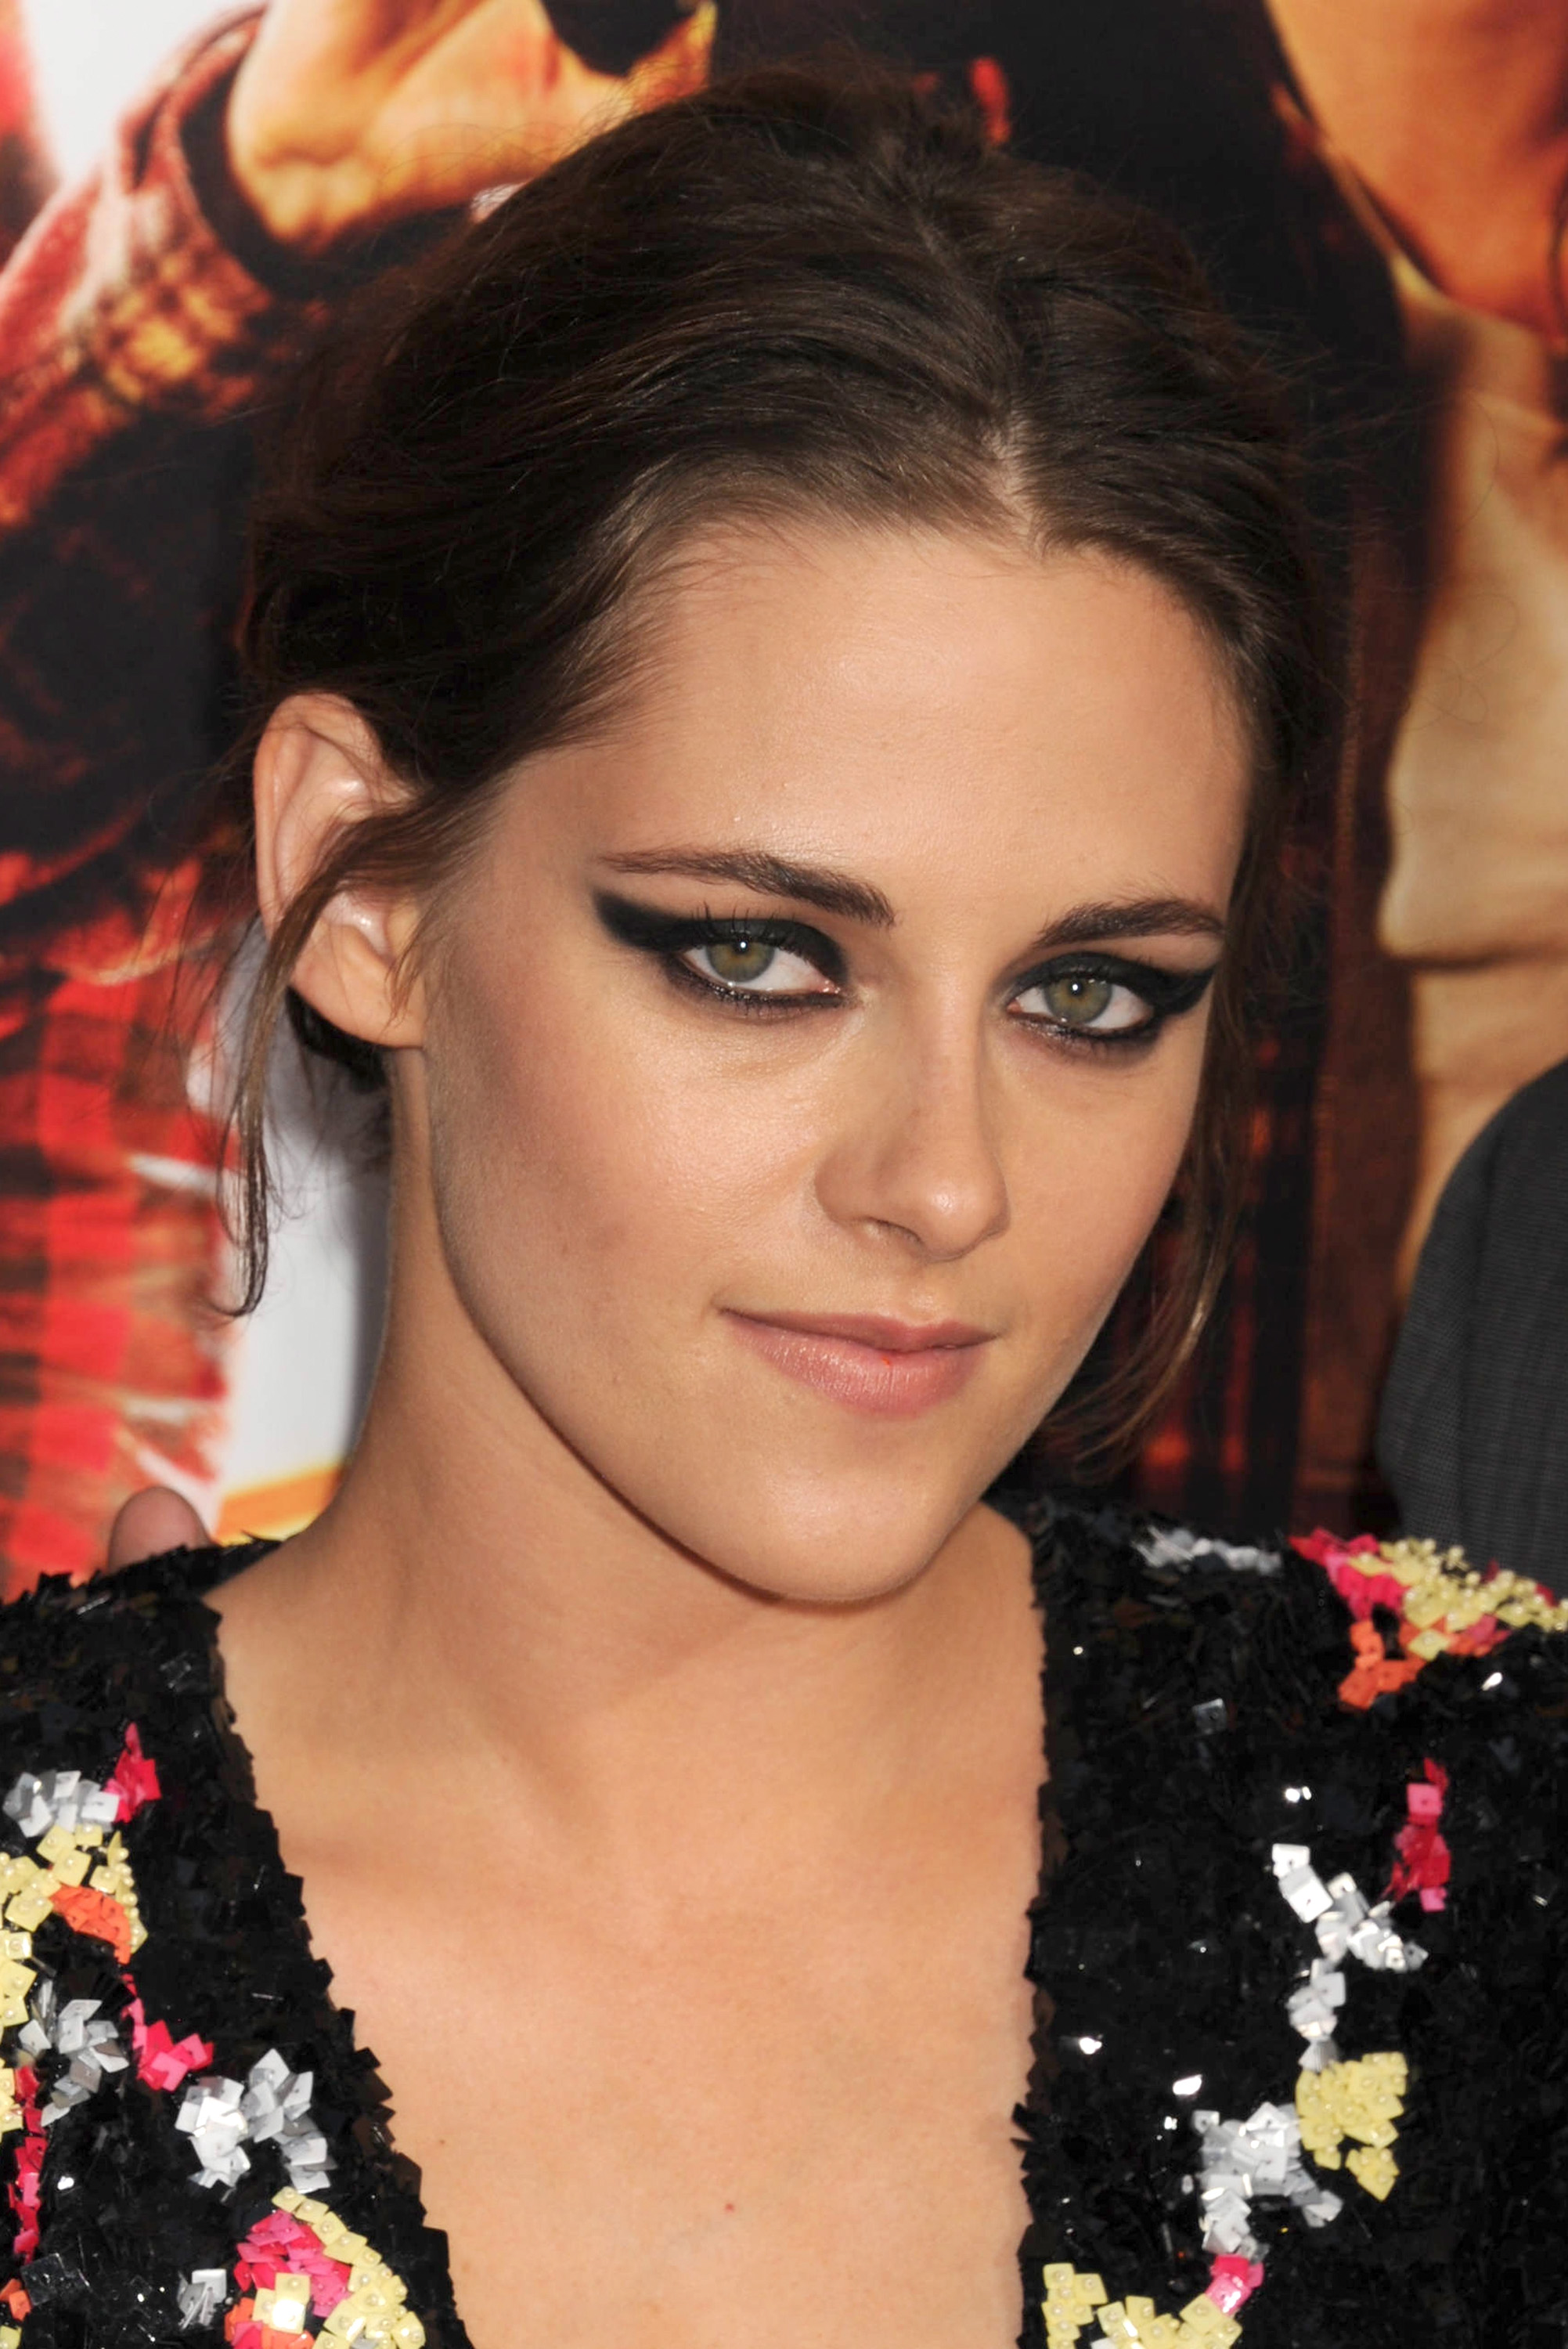 Kristen Stewart In Elle Magazine France November 2012: Kristen Stewart Pictures Gallery (115)